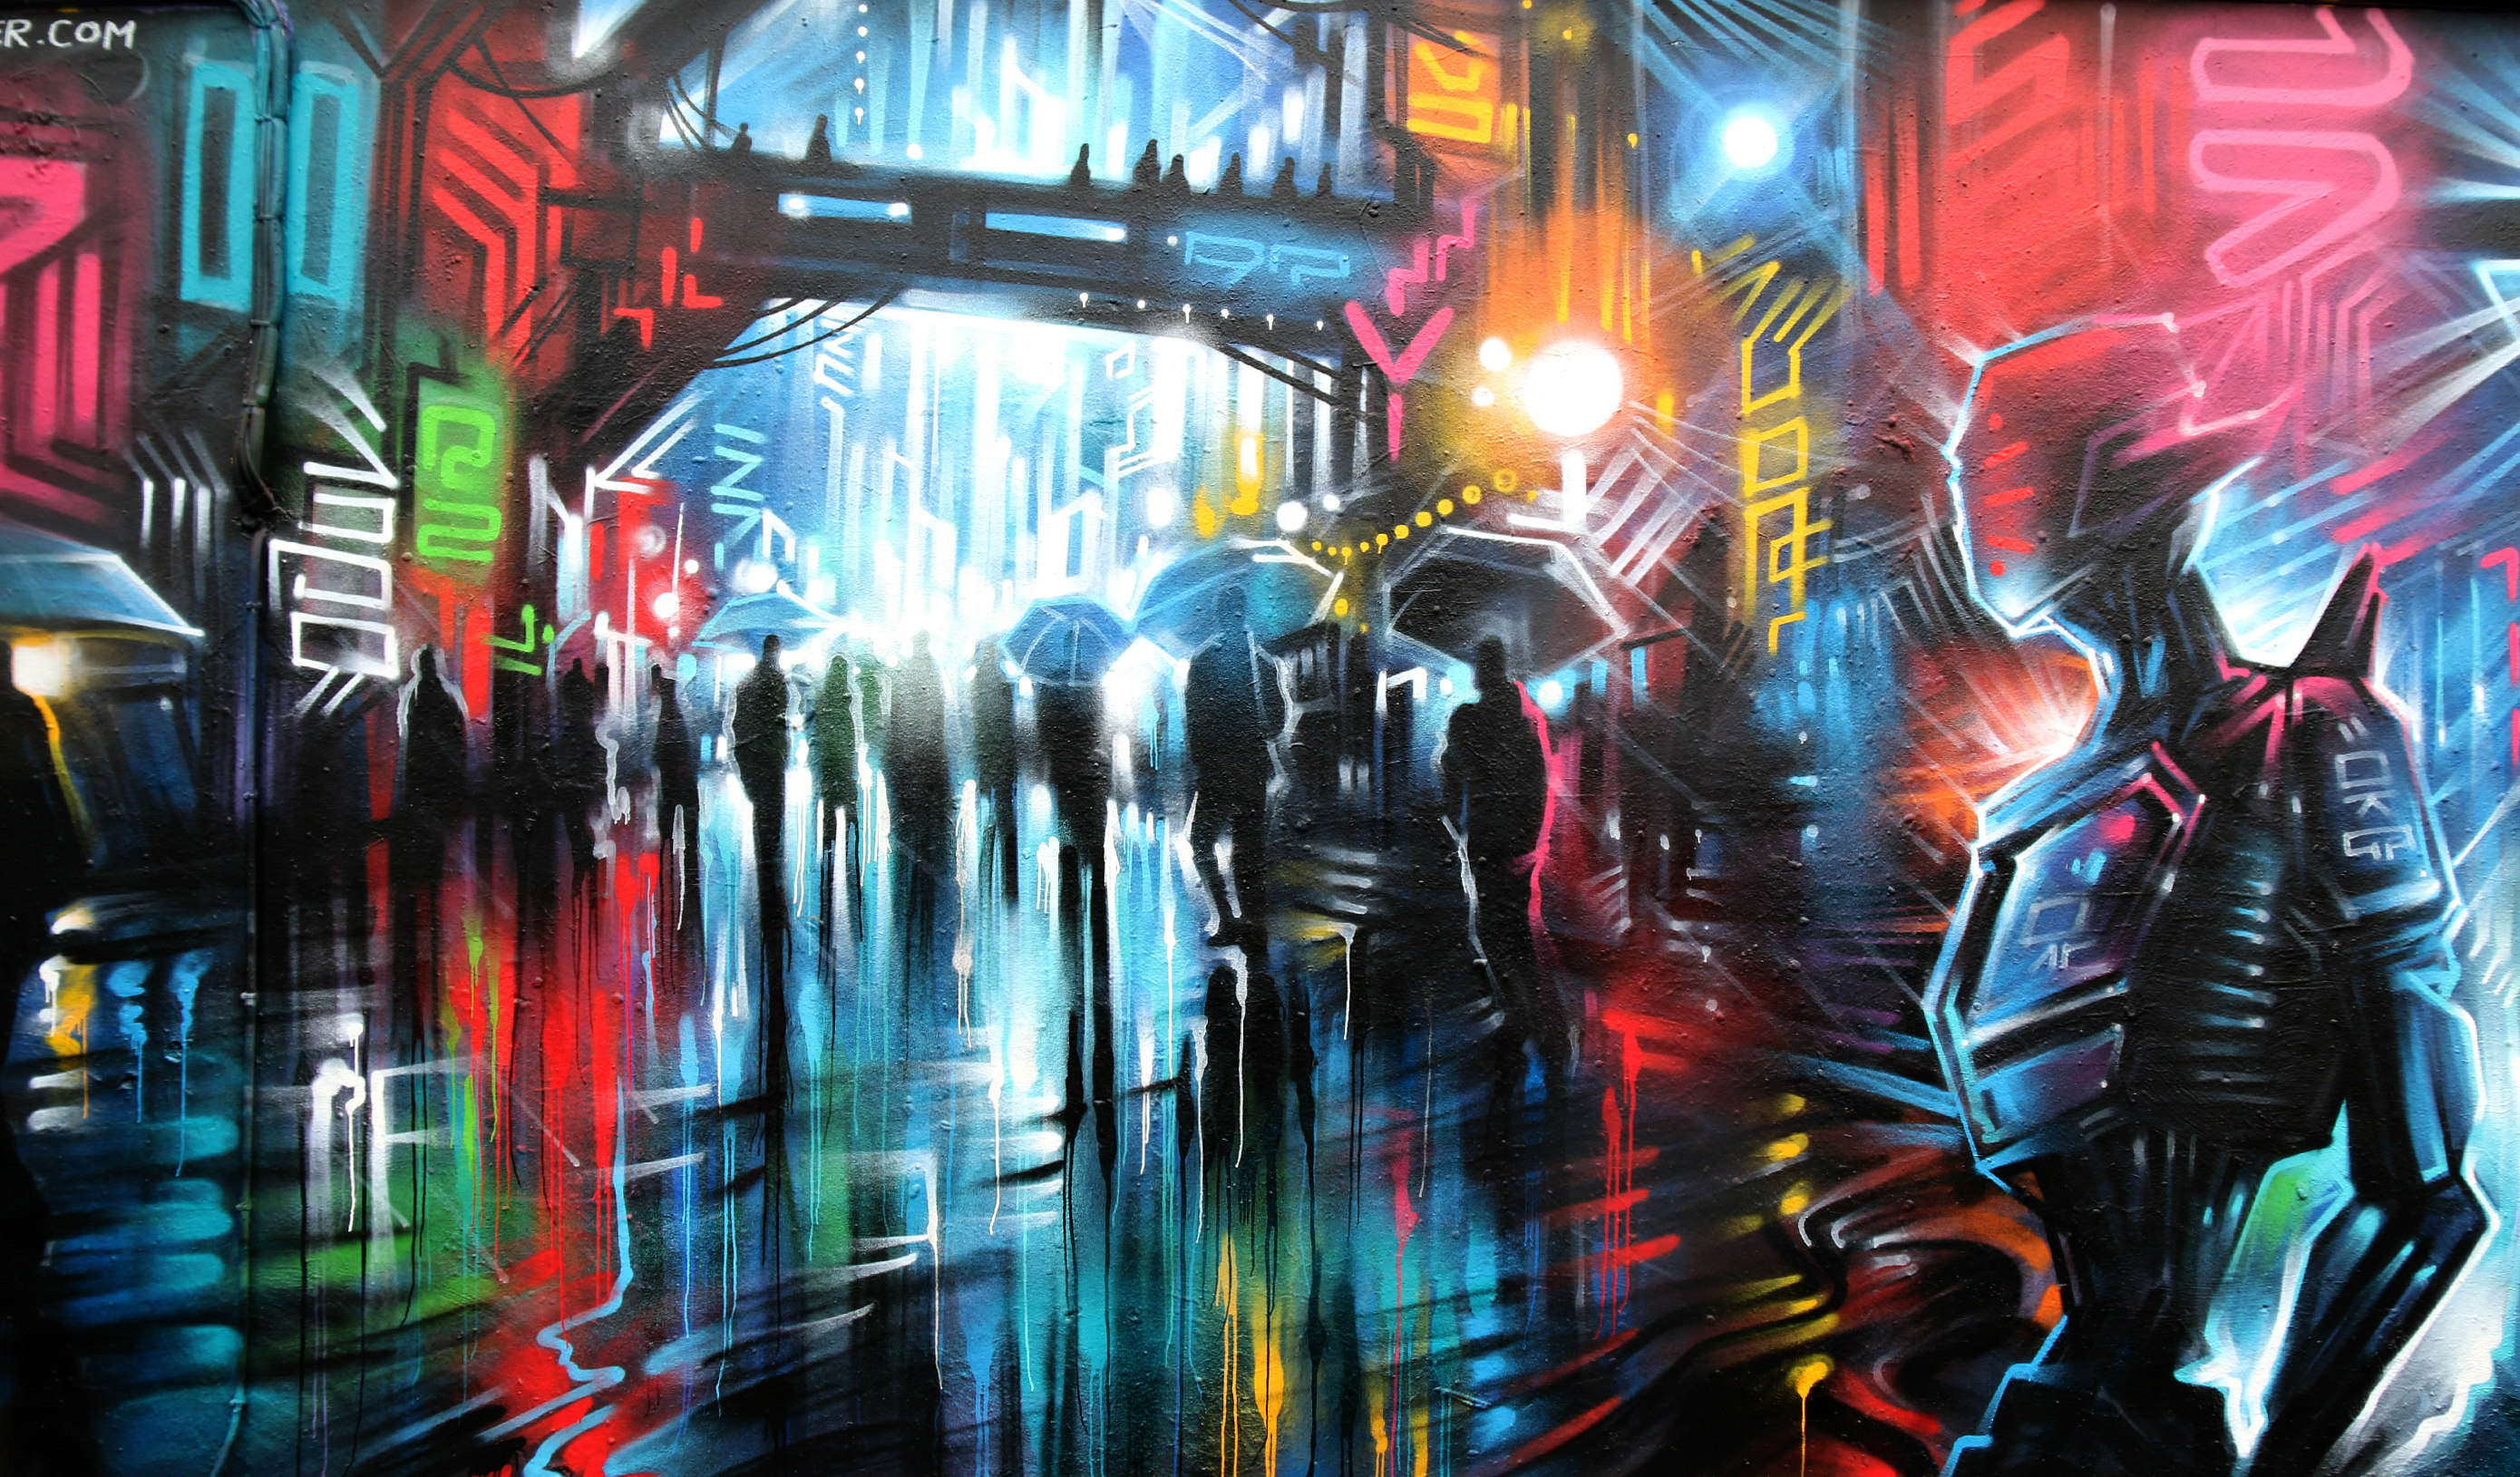 London Shoreditch street art Dan Kitchener